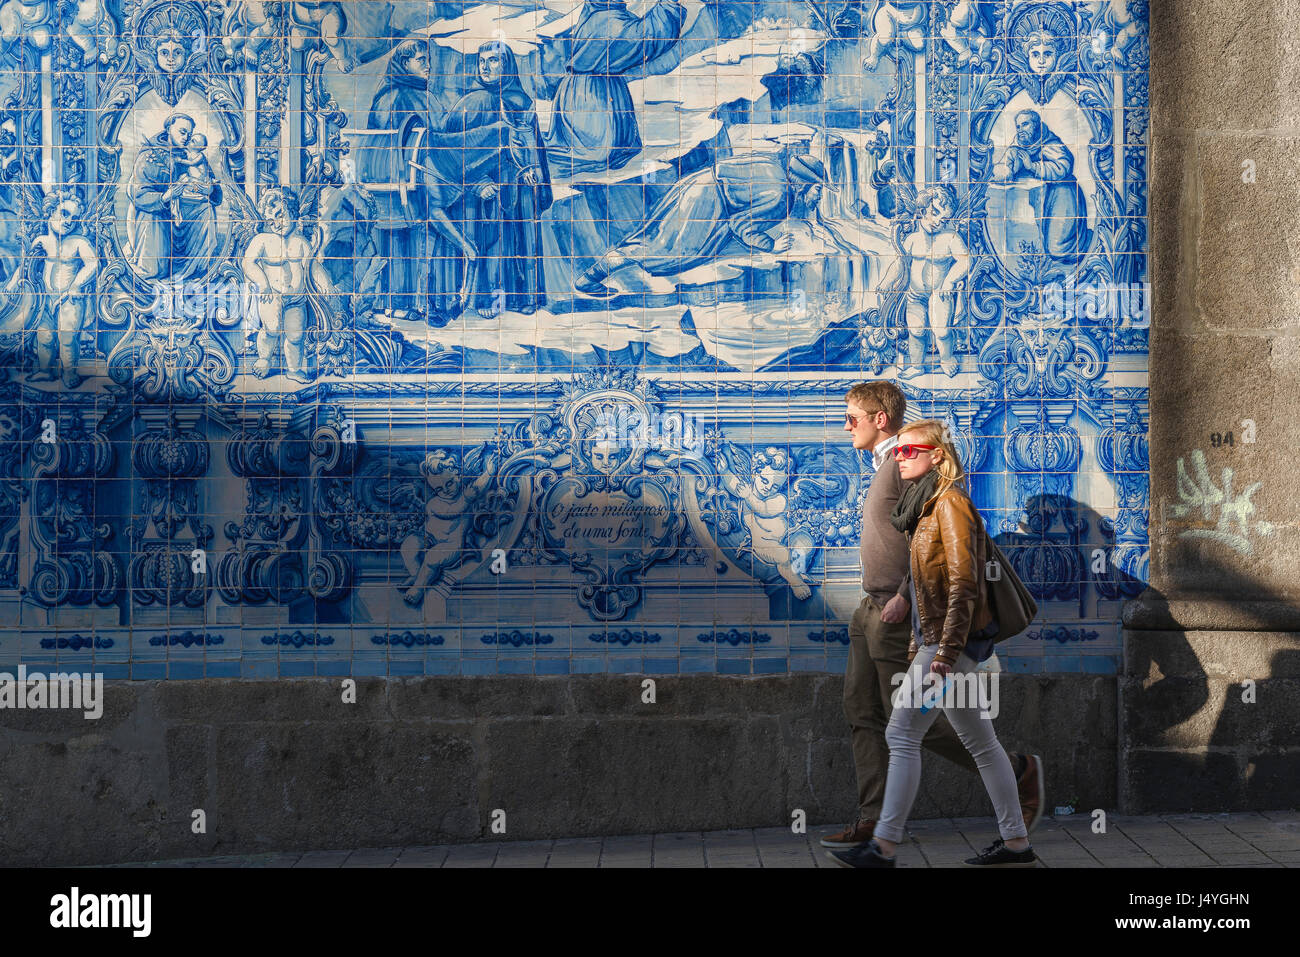 Portugal tiles people, a young couple walk past a wall of blue azulejos tiles on the side of the Capela das Almas - Stock Image